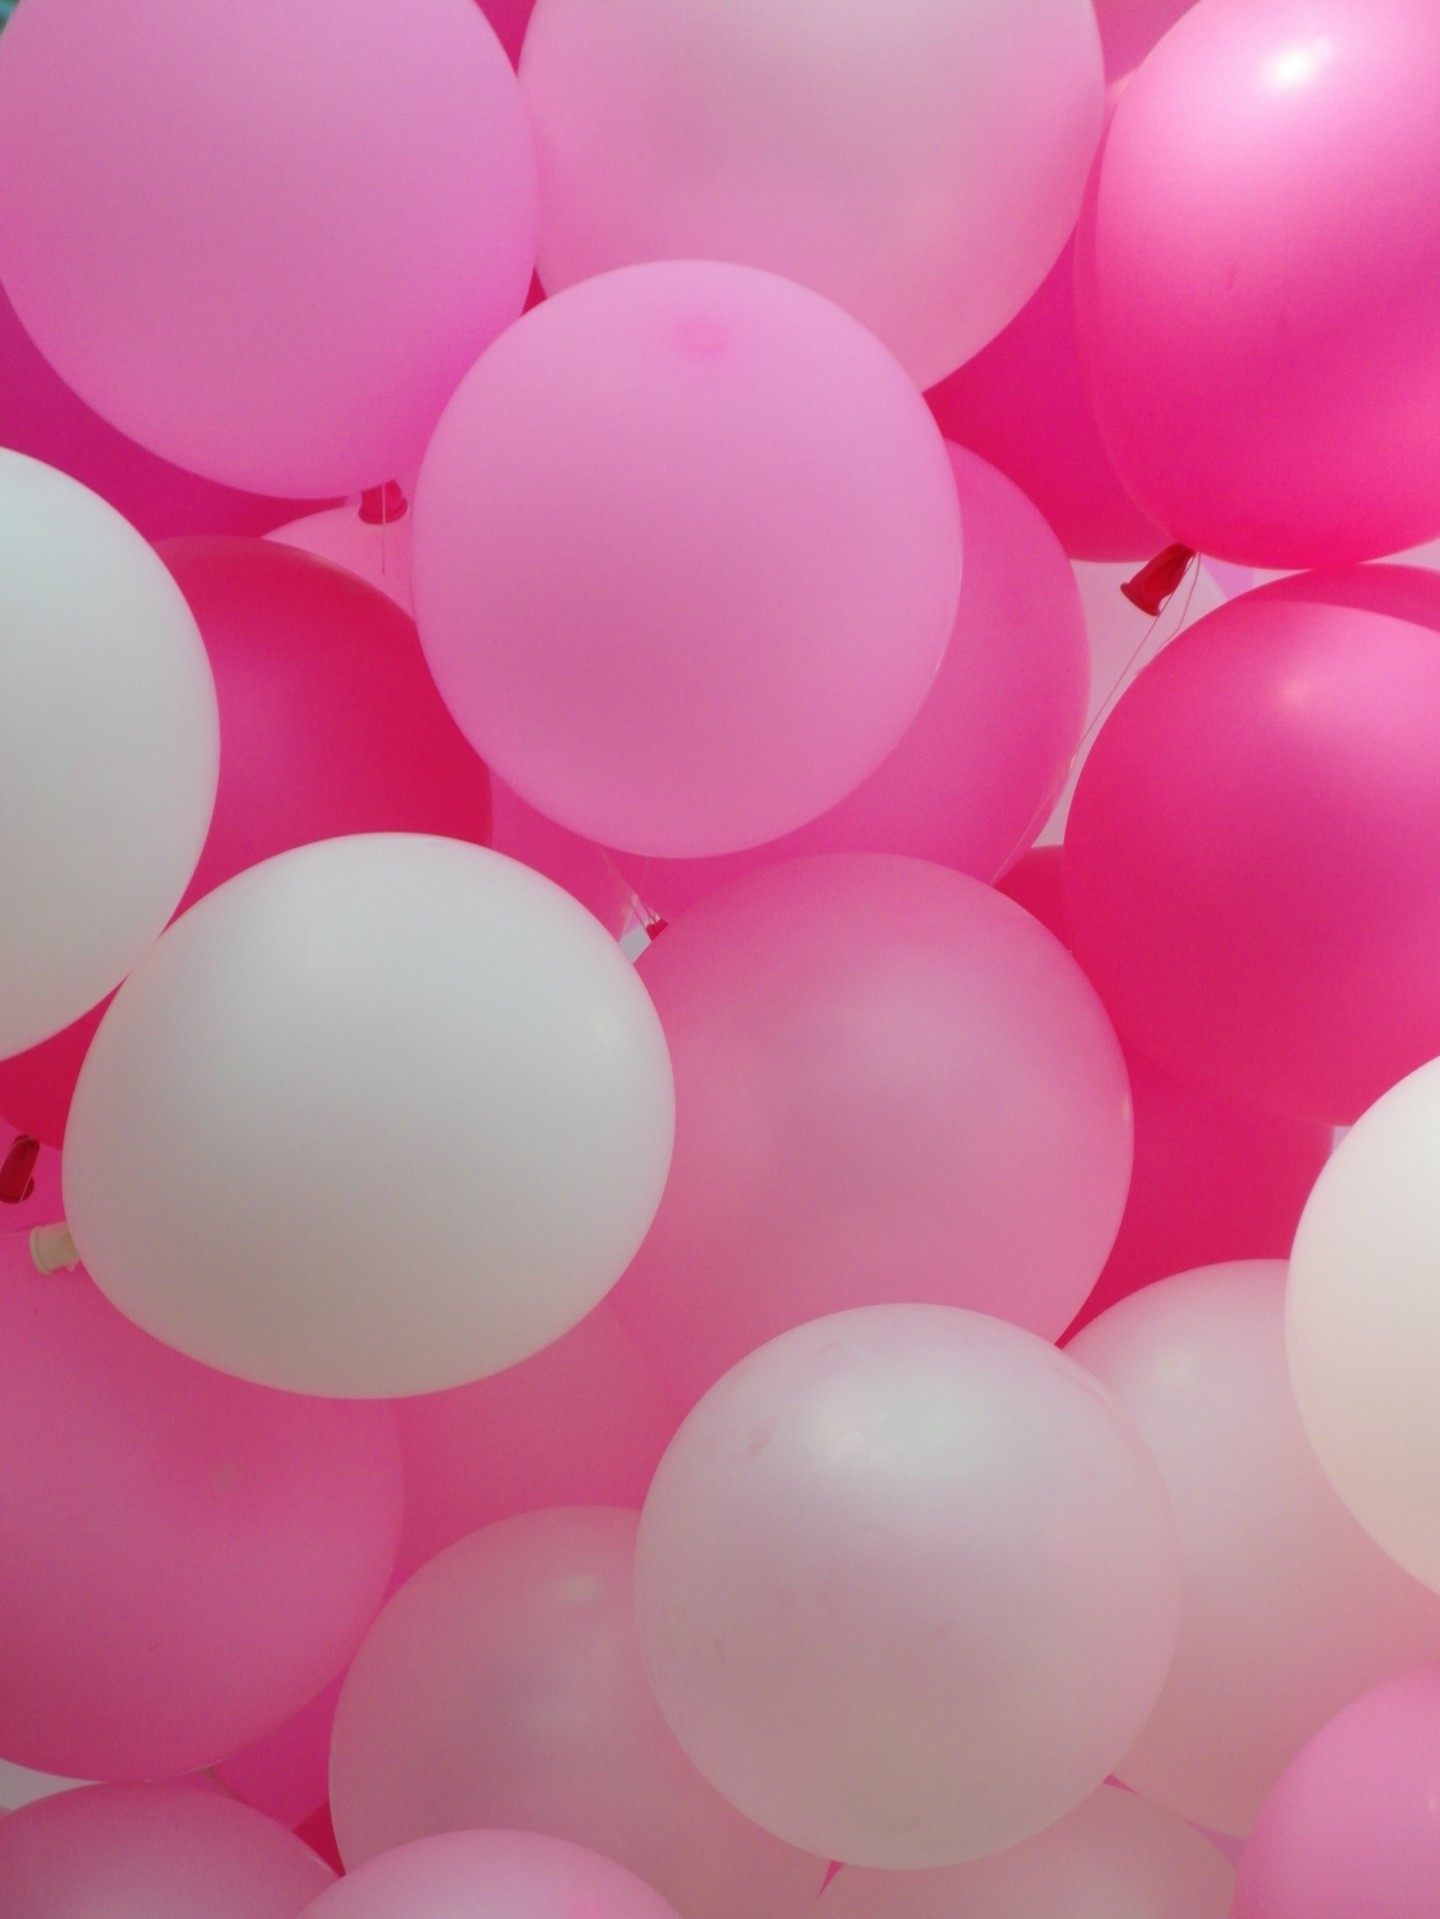 Wallpaper Girl Pink Iphone Pink Balloons Free Stock Photo Public Domain Pictures